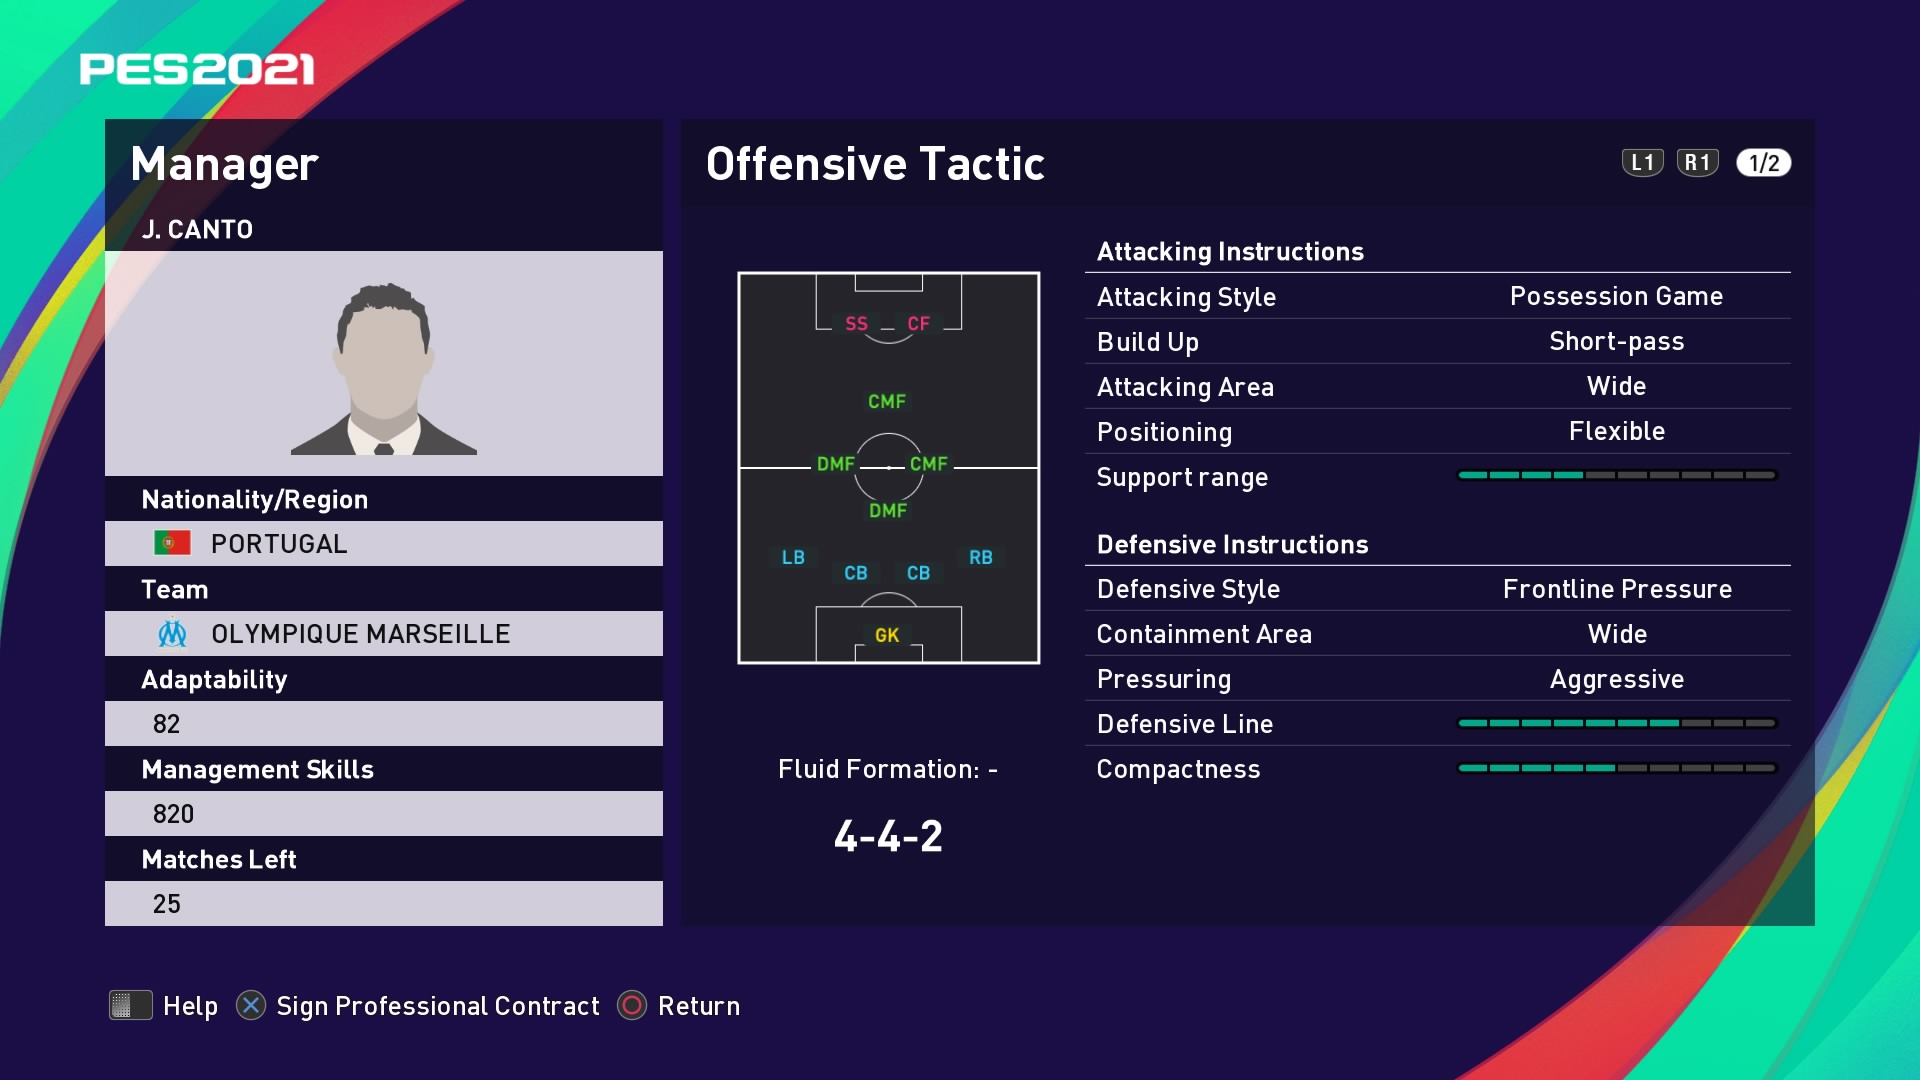 J. Canto (2) (André Villas-Boas) Offensive Tactic in PES 2021 myClub